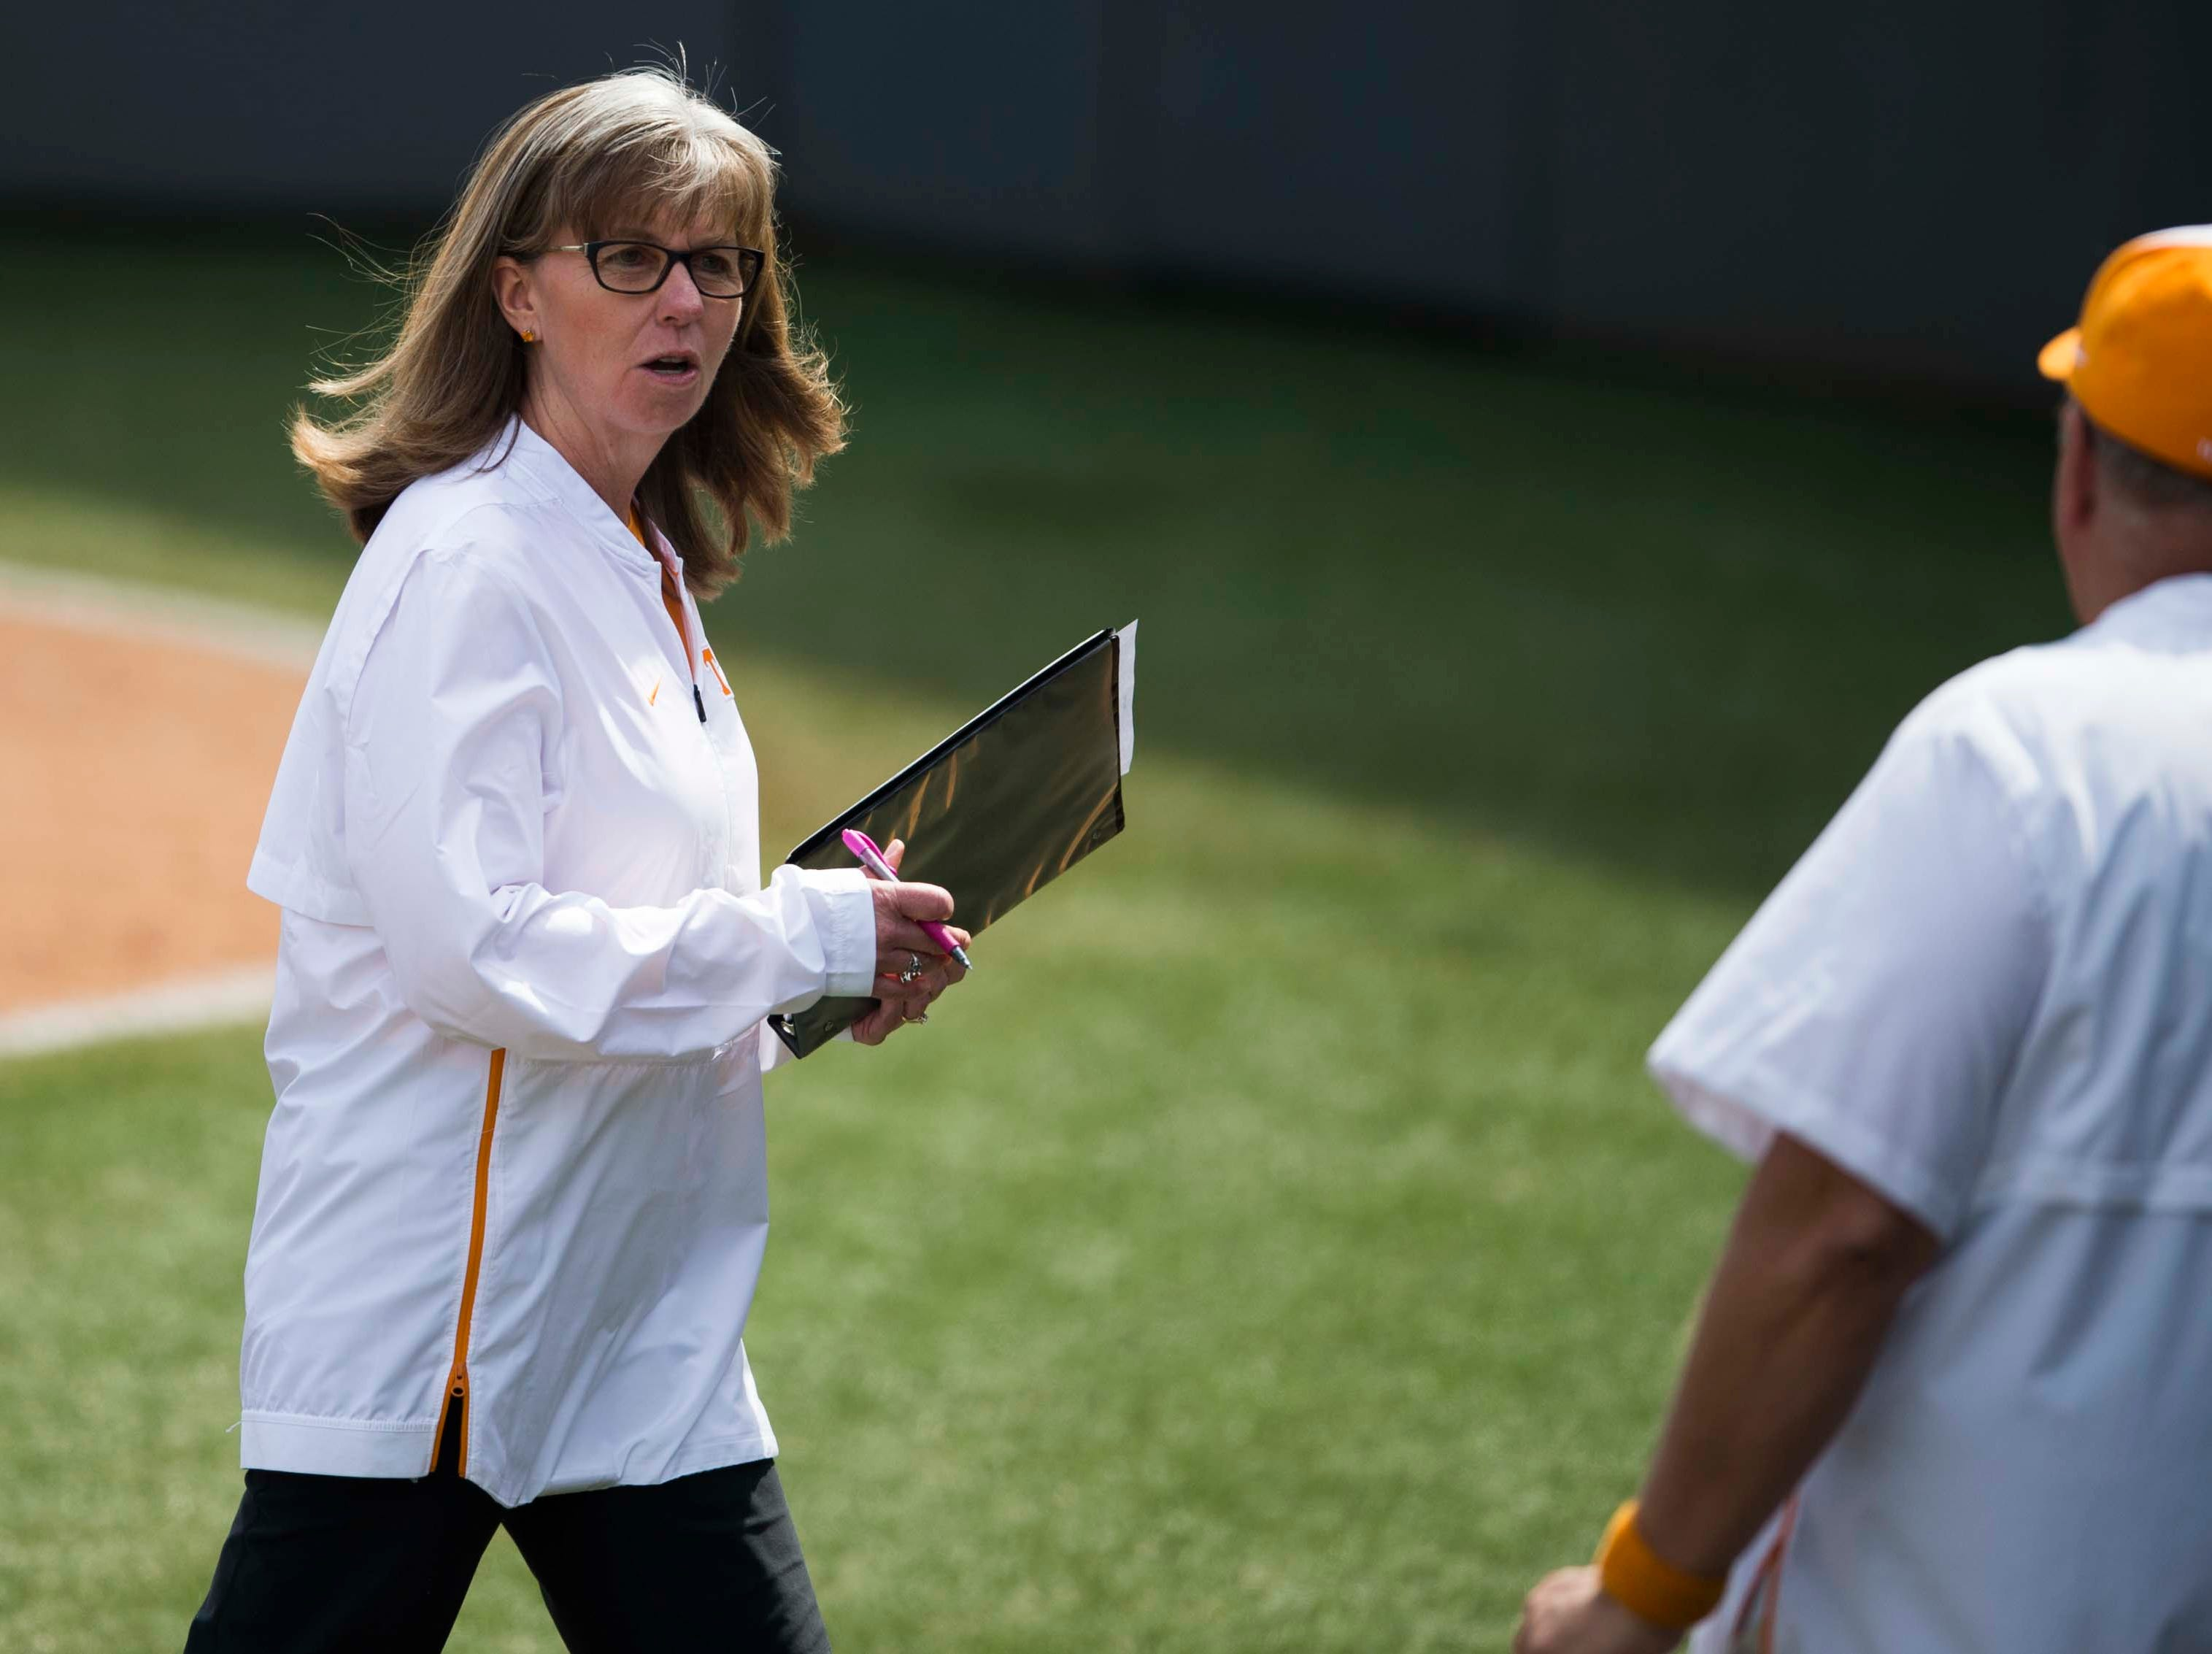 Tennessee co-head coach Karen Weekly walks off the field during a Lady Vols softball game against Arkansas at Sherri Parker Lee stadium on University of Tennessee's campus in Knoxville Sunday, March 24, 2019. The Lady Vols defeated Arkansas.